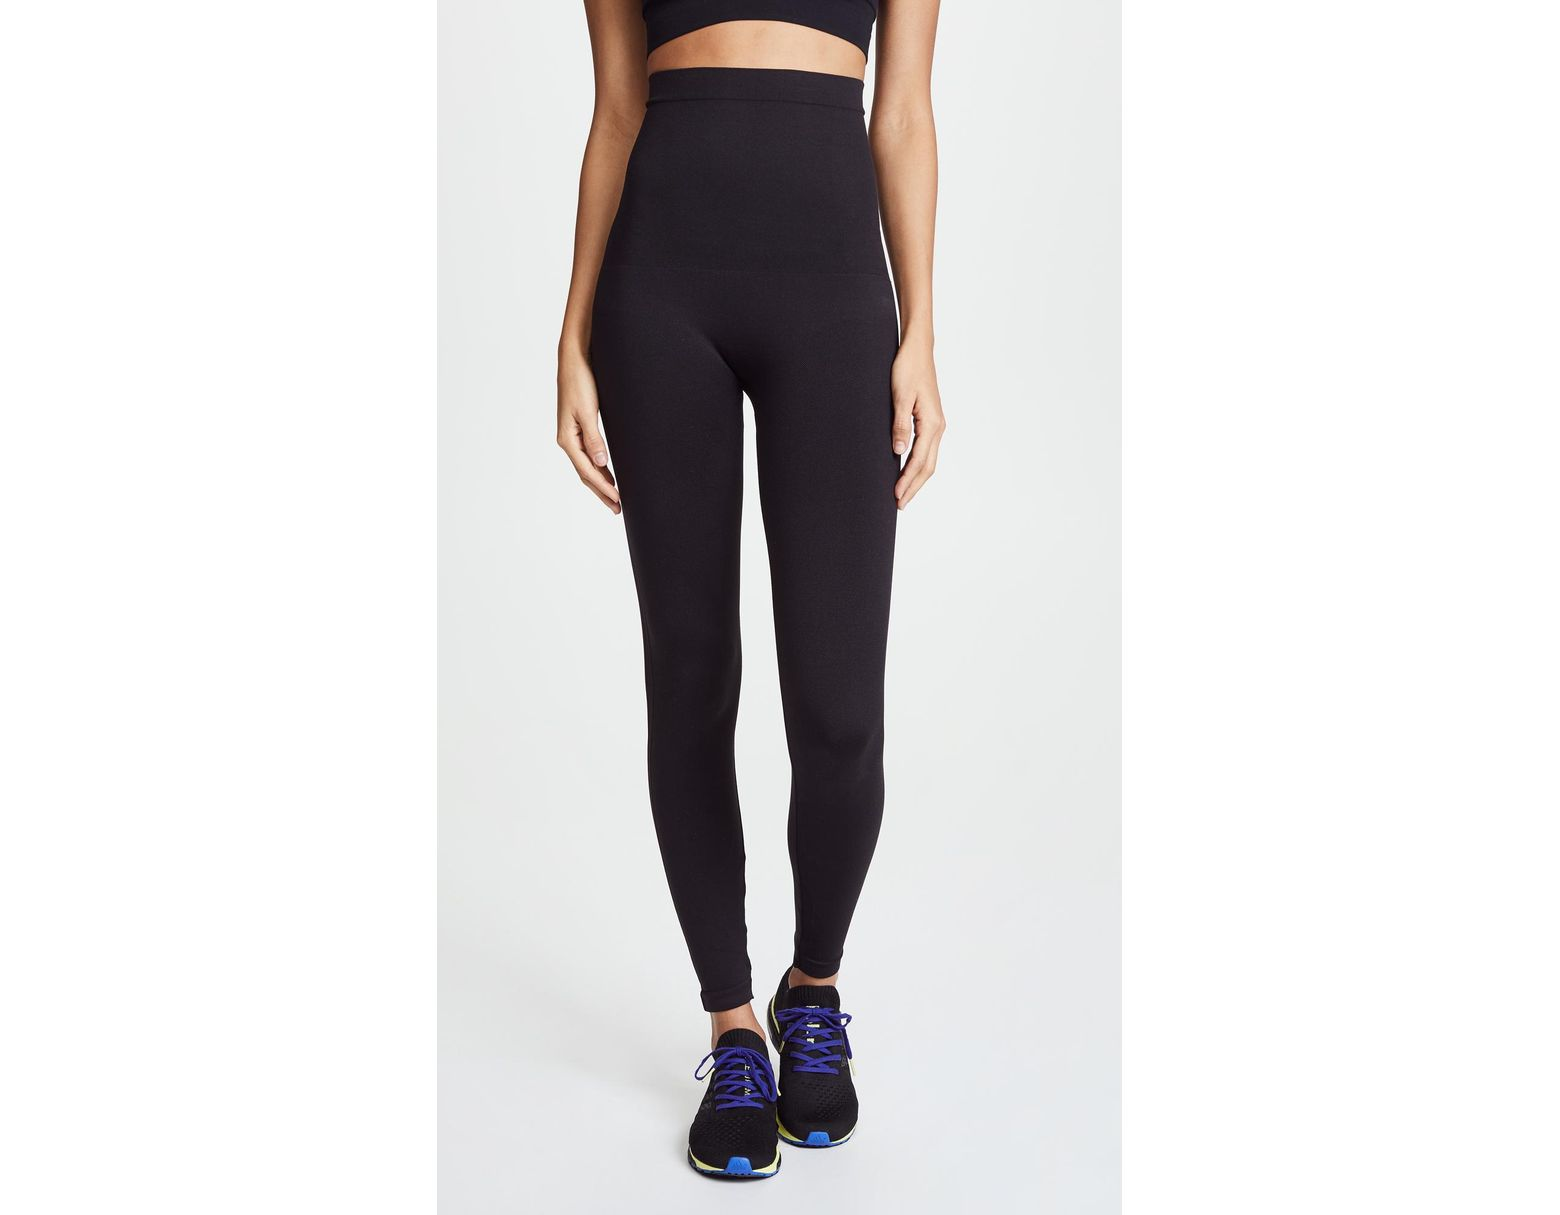 86ec708a80480 Spanx High Waisted Look At Me Now Leggings in Black - Lyst